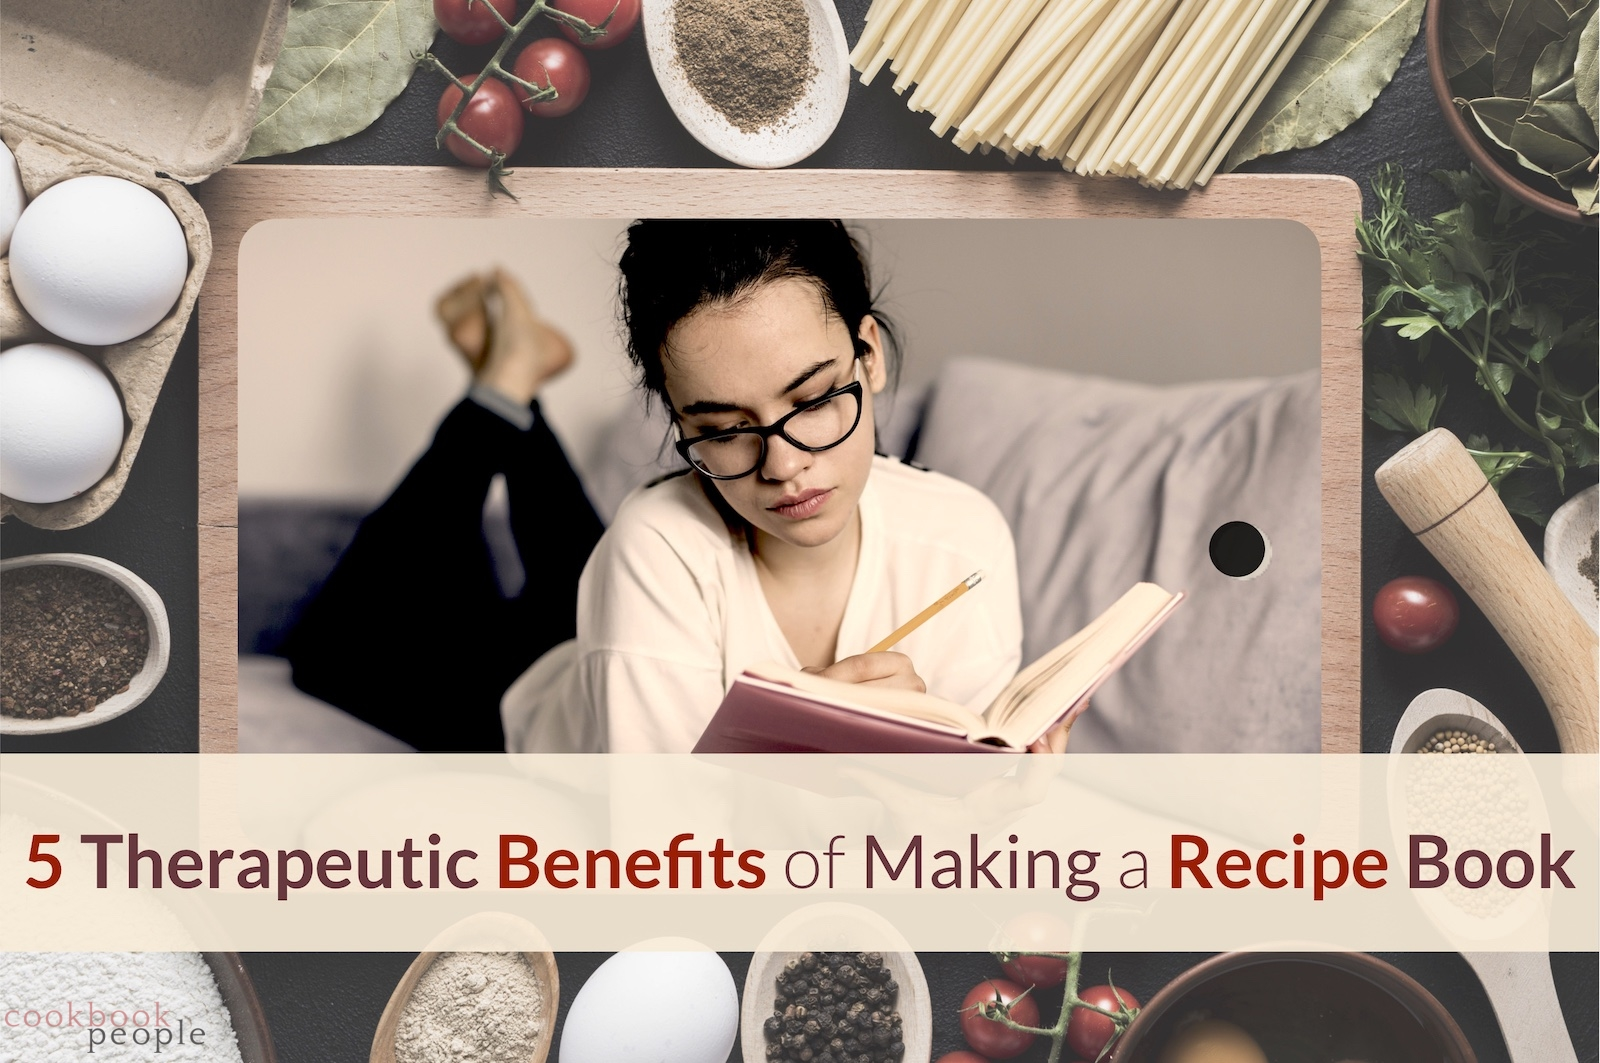 Woman lying on sofa making notes in book superimposed on chopping board surrounded with cooking ingredients and overlaid with text: 5 Therapeutic Benefits of Making a Recipe Book